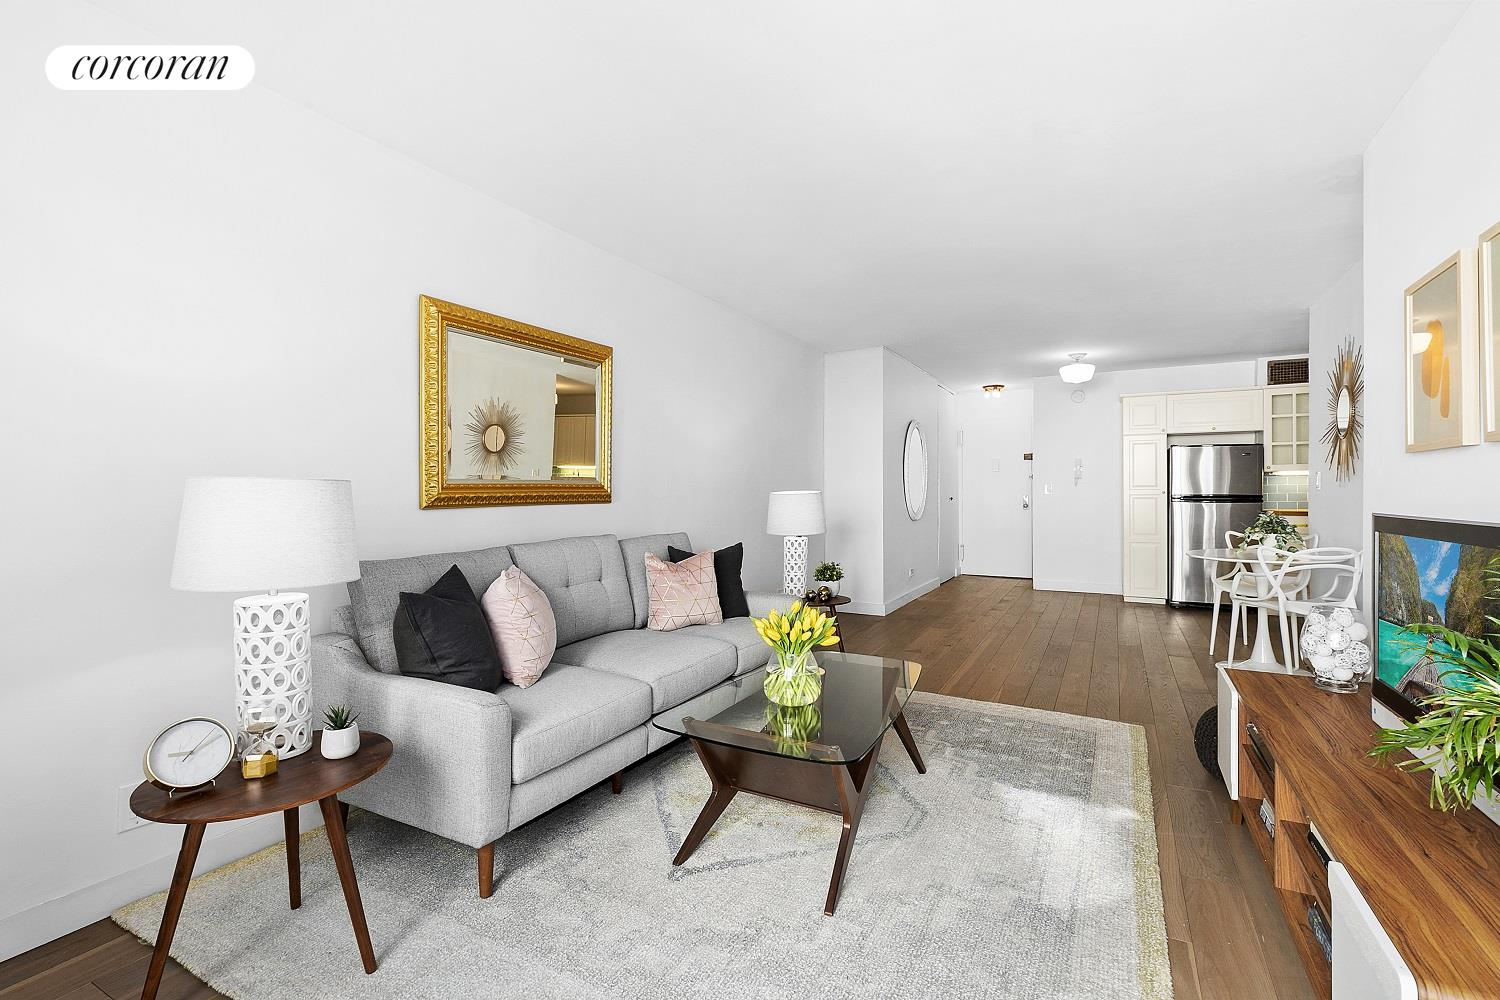 Apartment for sale at 85 Livingston Street, Apt 16L